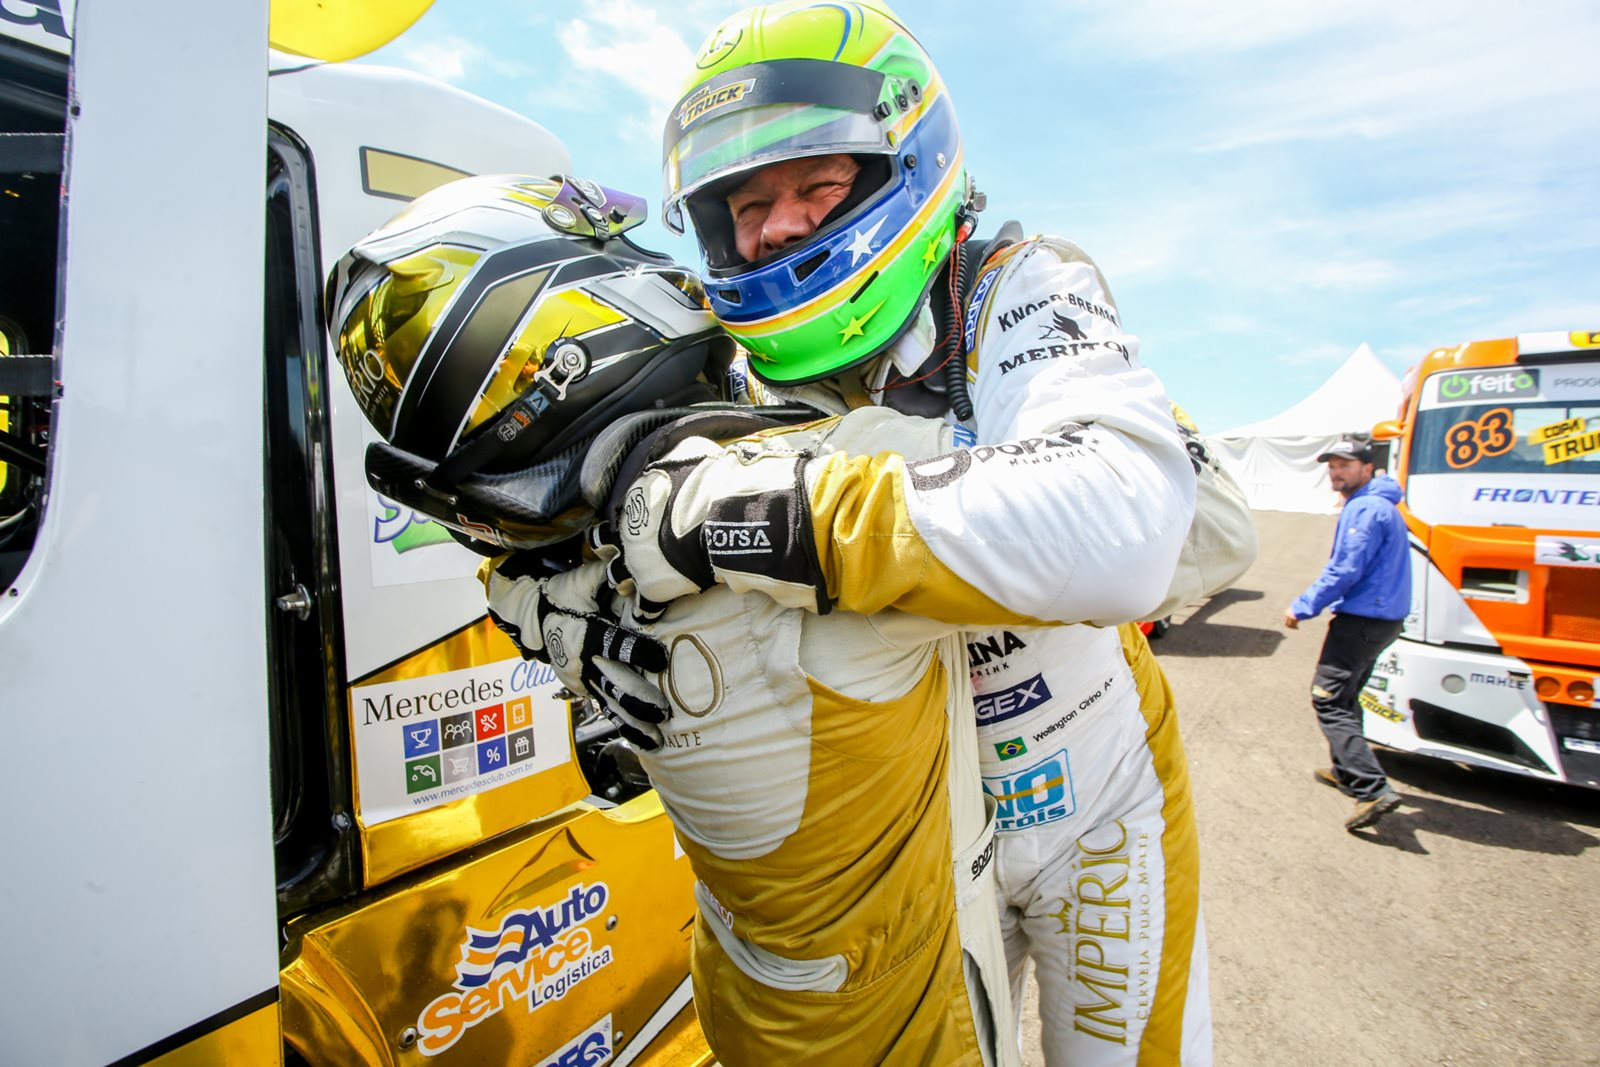 Photo of Truck – Pole position em Rivera fica com Wellington Cirino